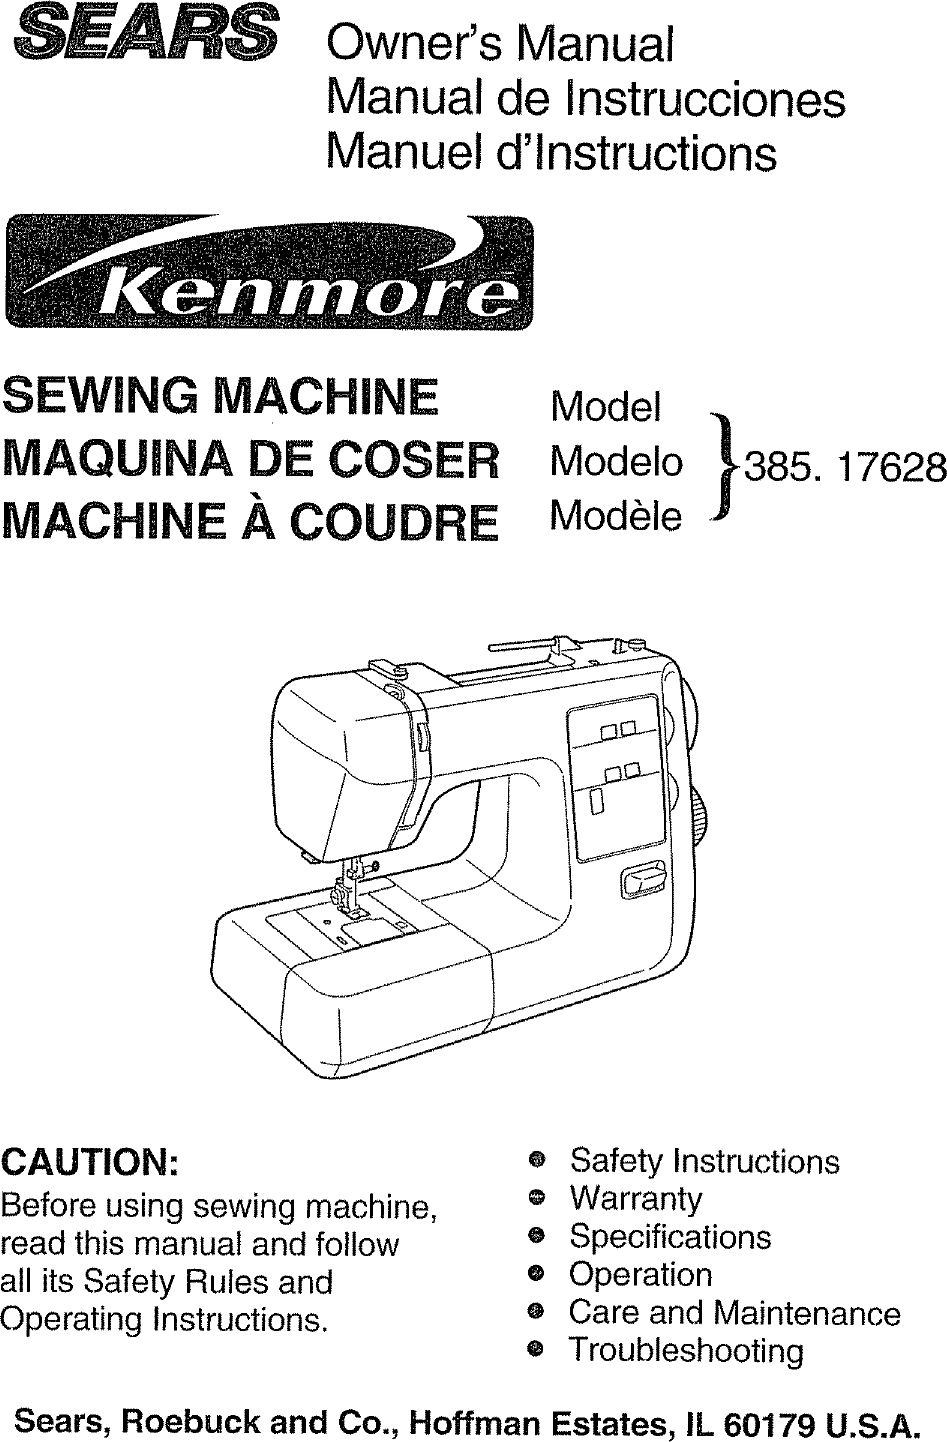 medium resolution of kenmore 38517628890 user manual sewing machine manuals and guides l0707007